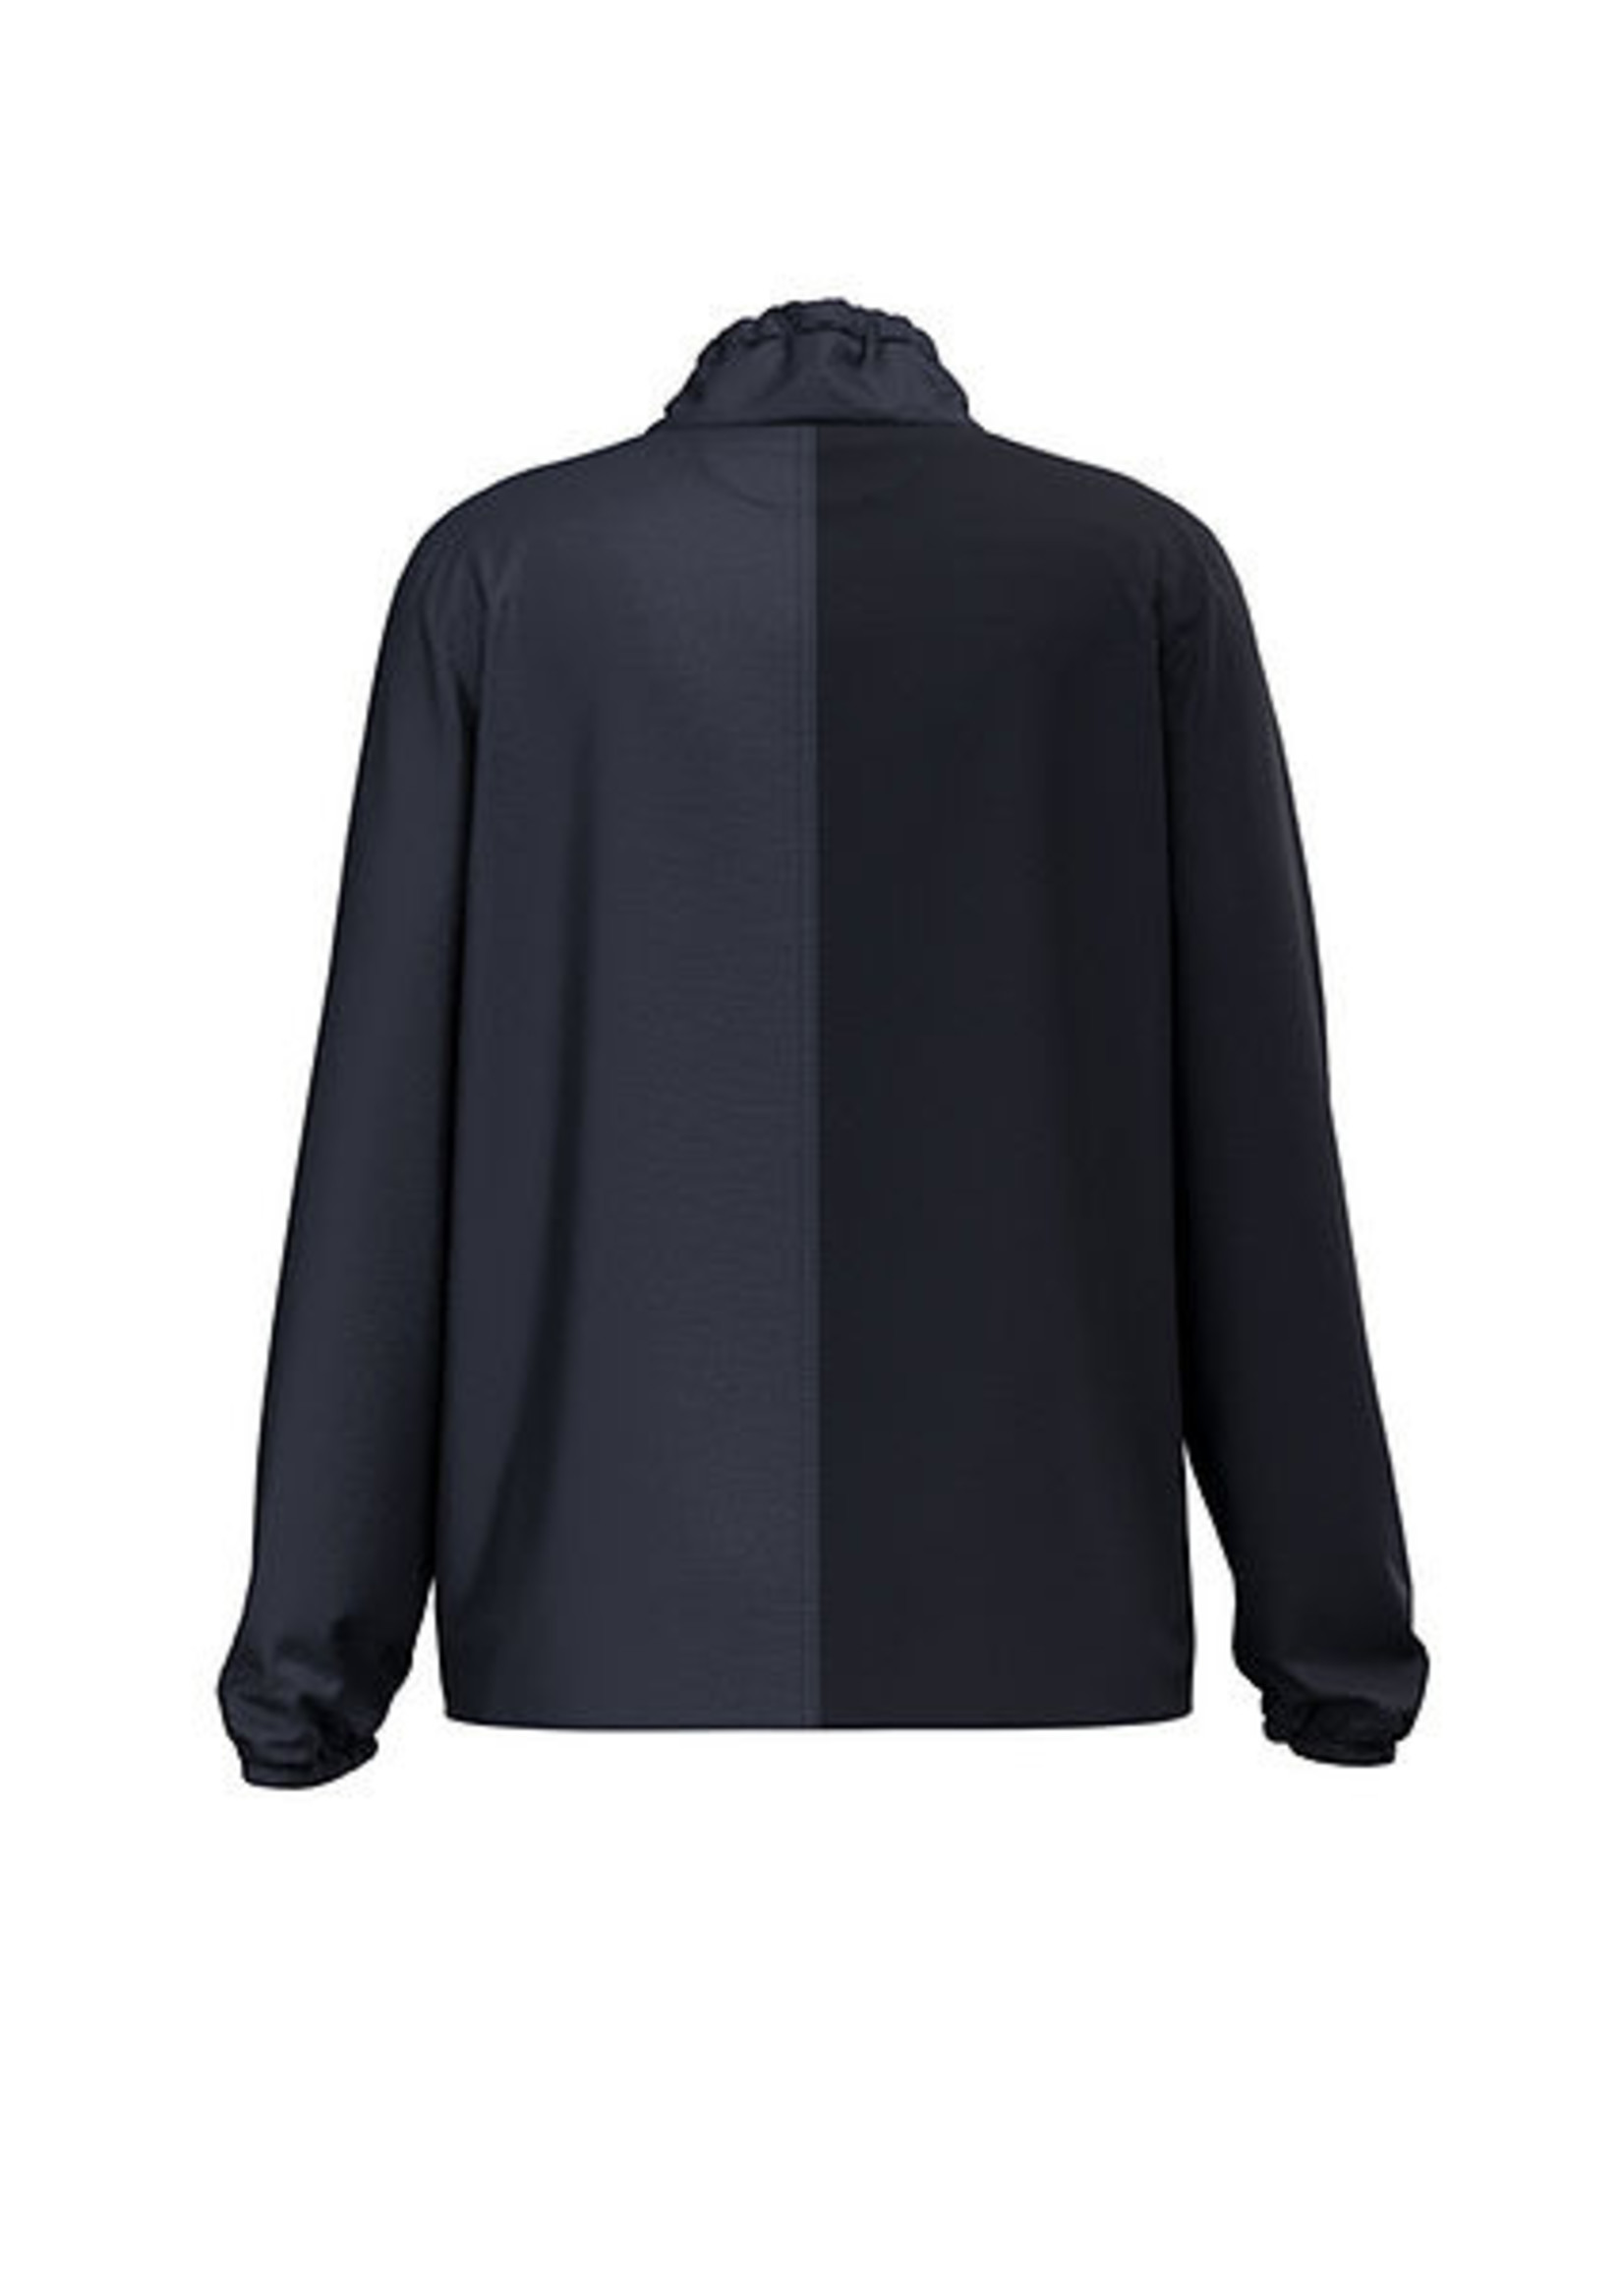 Marccain Sports Blouse RS 55.29 W63 midnight blue